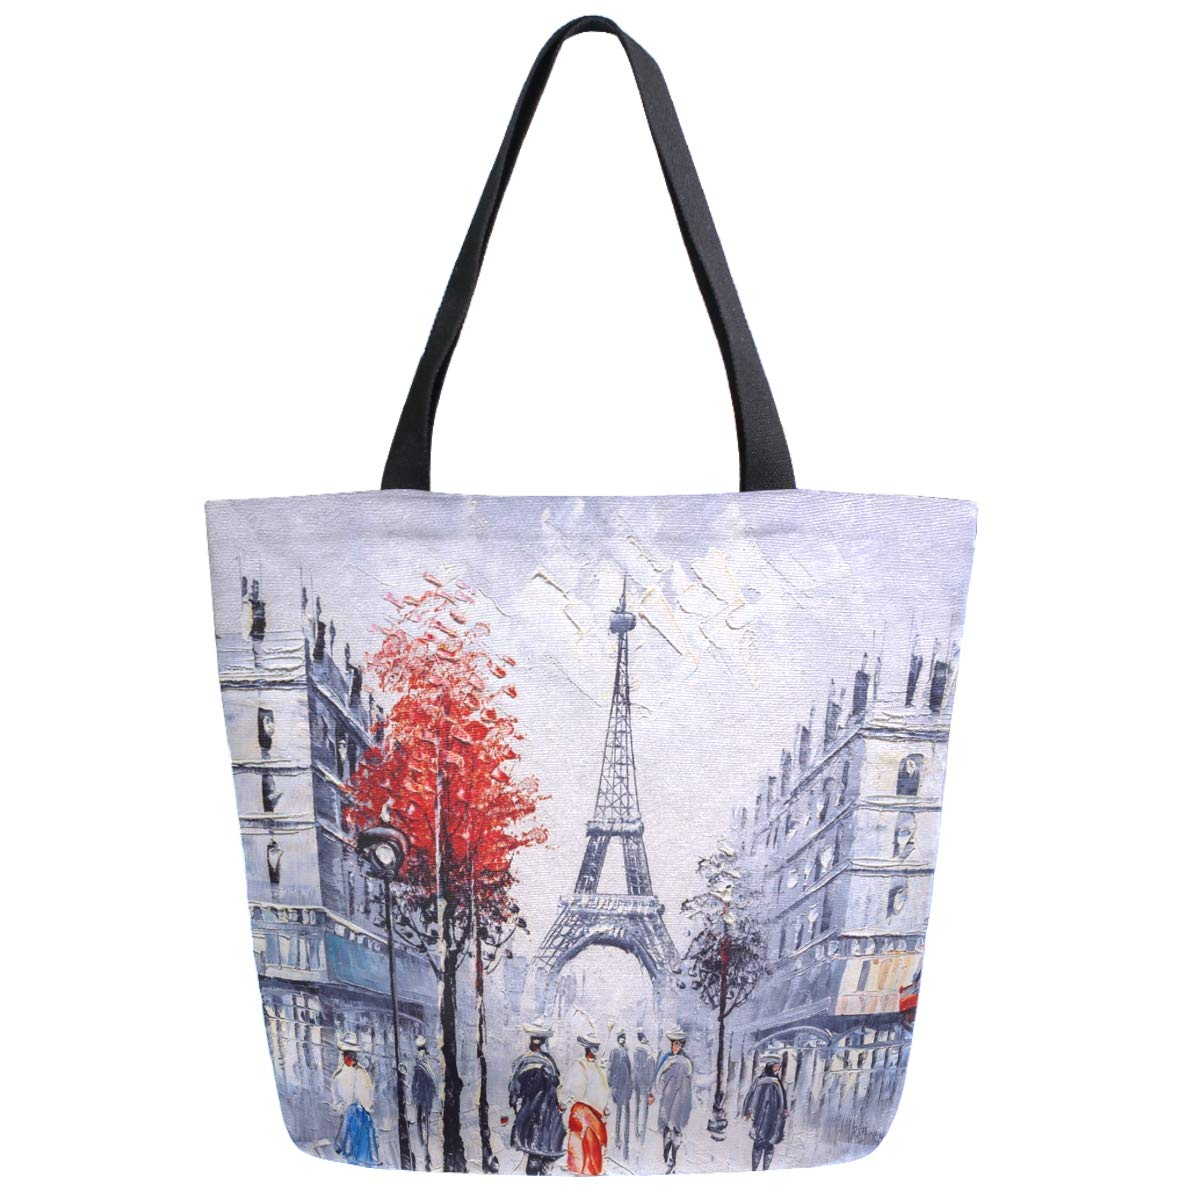 ZzWwR Stylish Paris Street Eiffel Tower Painting Print Extra Large Canvas Beach Travel Reusable Grocery Shopping Tote Bag for Women Girls